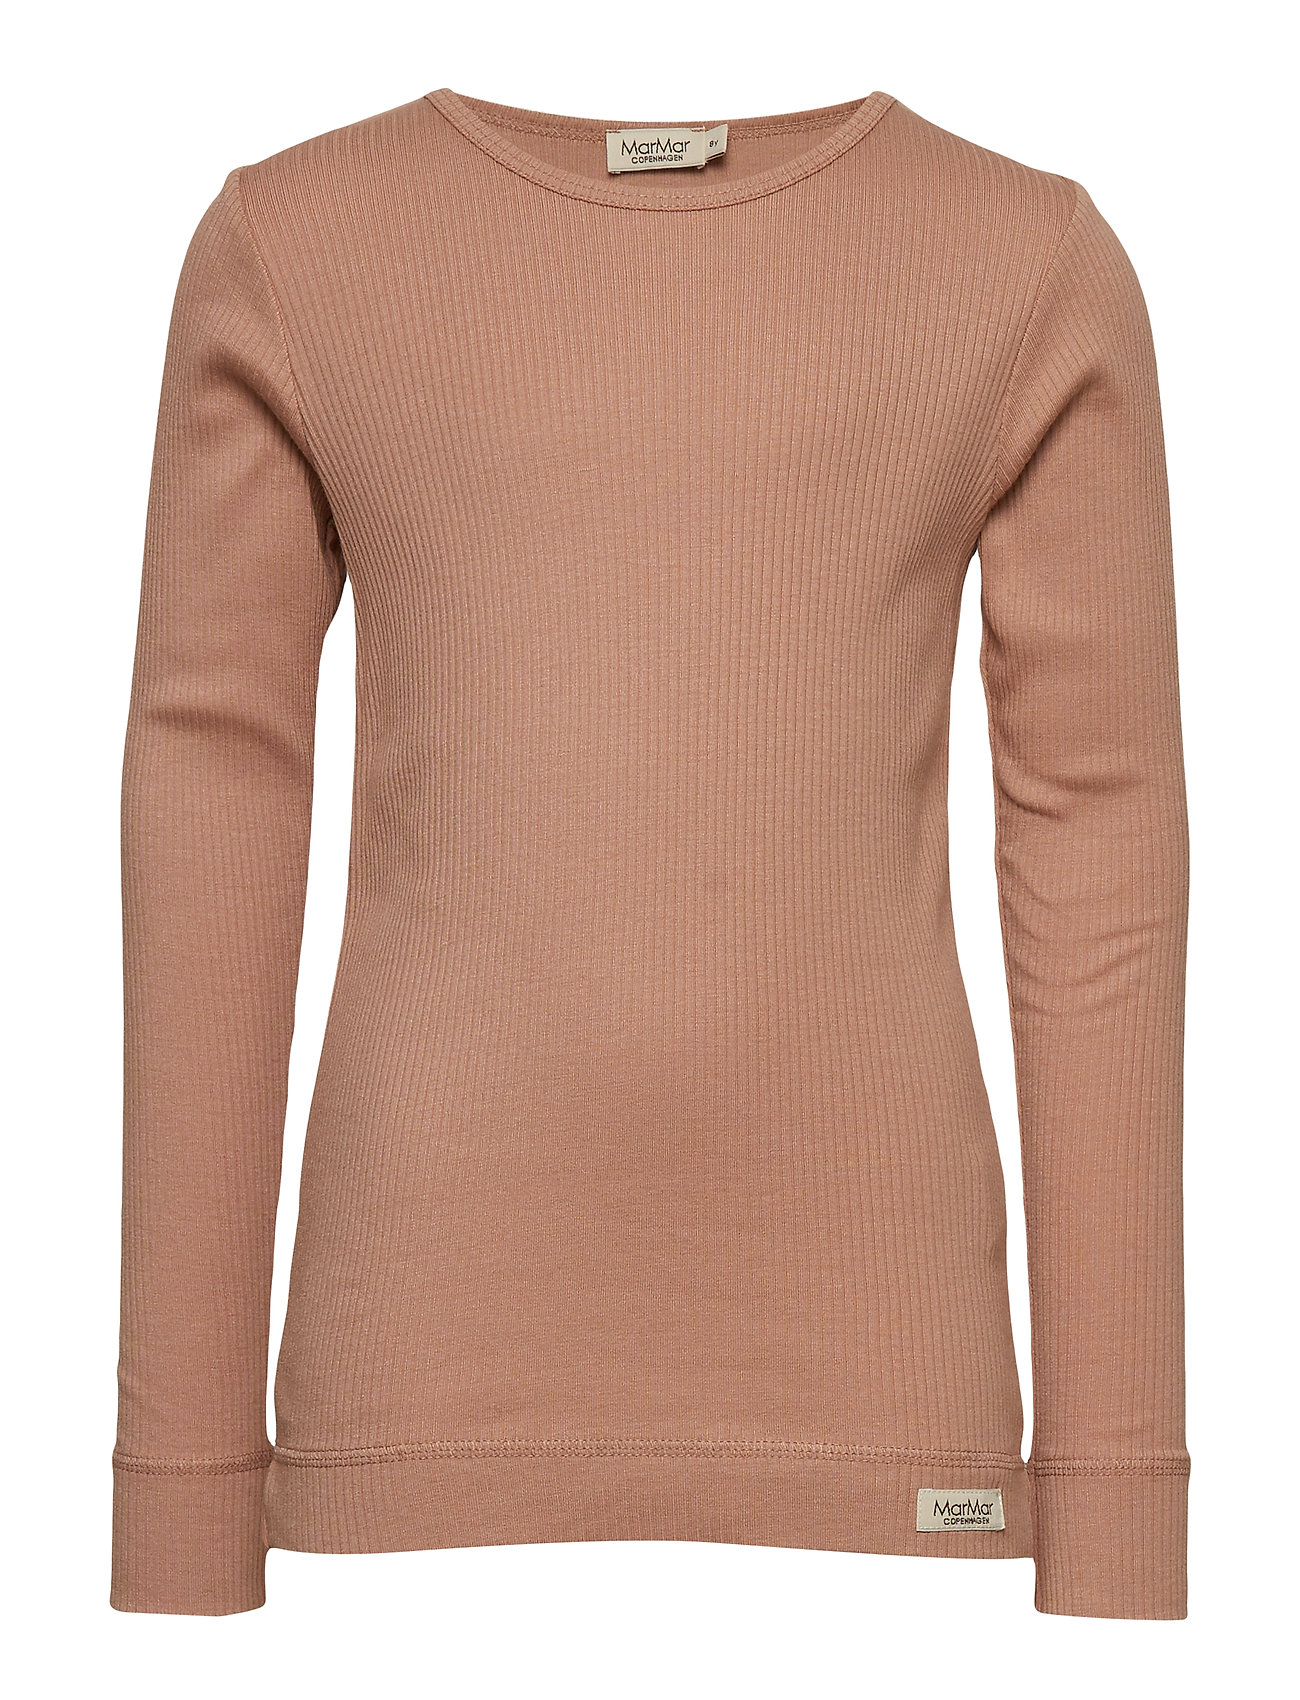 MarMar Cph Plain Tee LS - ROSE BROWN